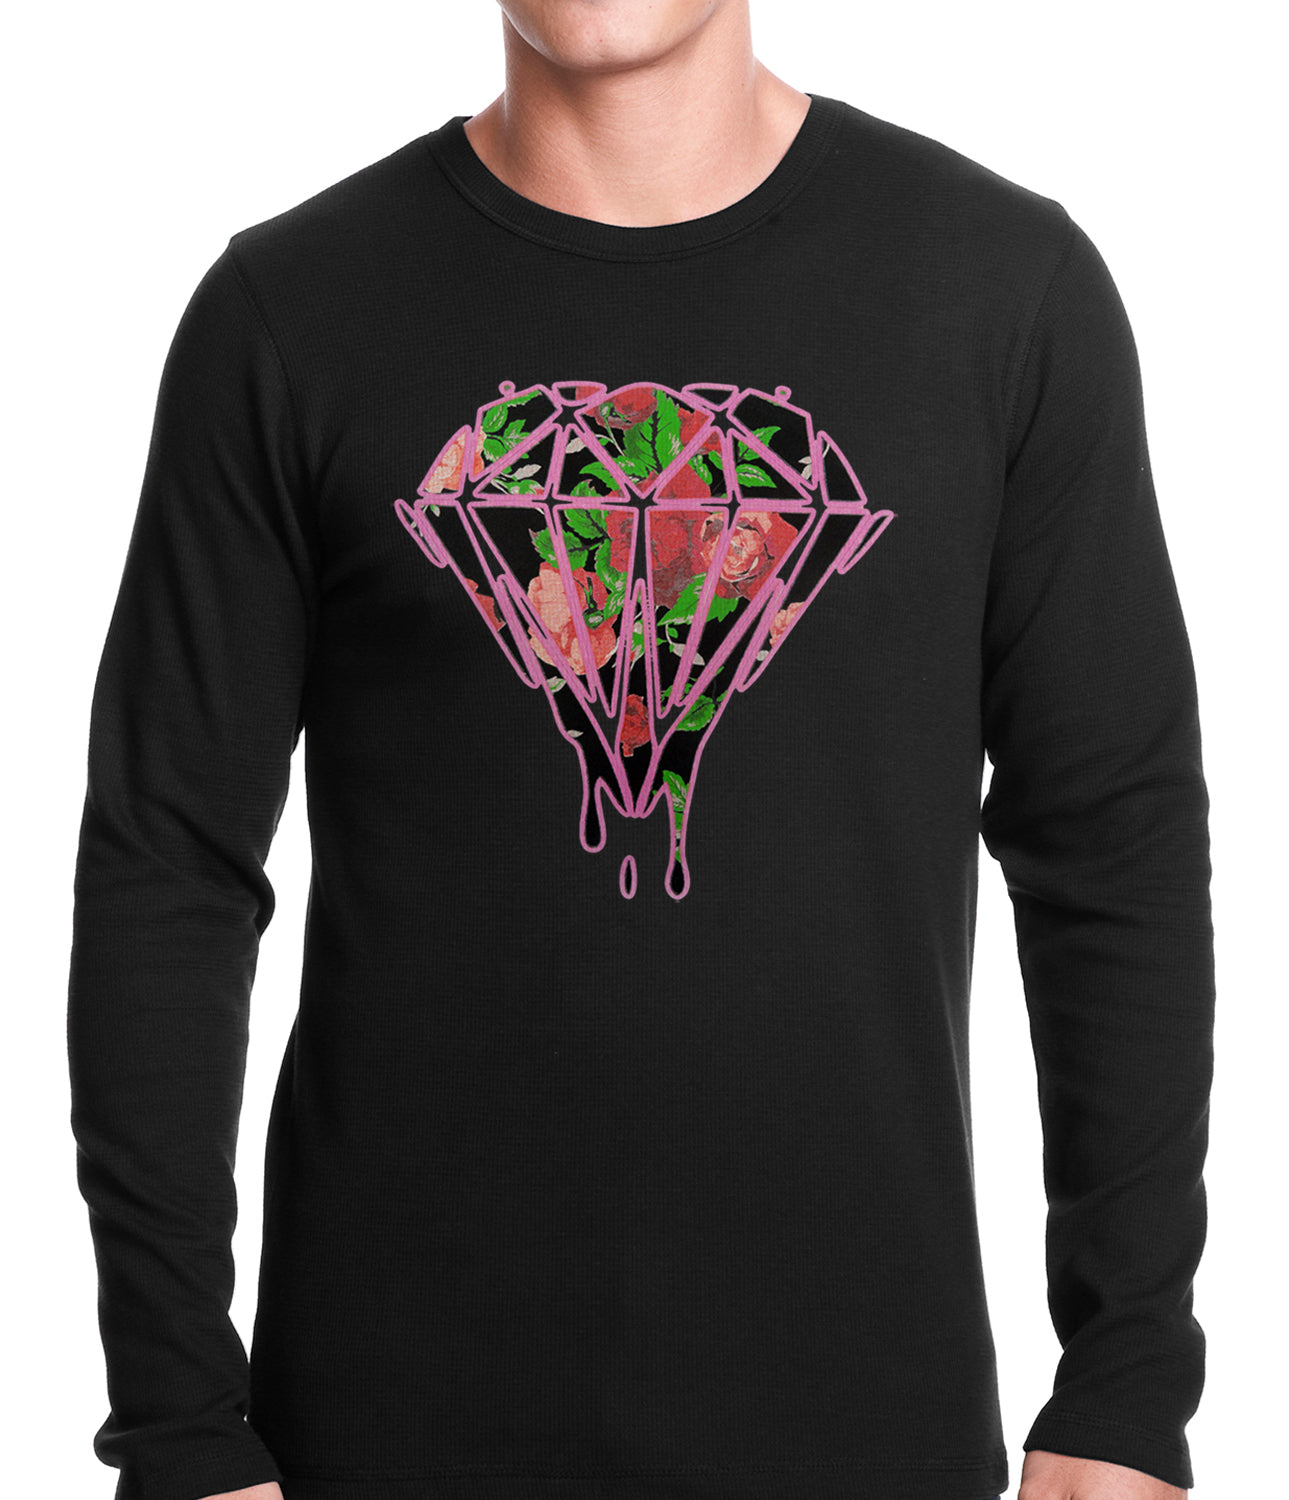 Roses Dripping Diamond Thermal Shirt